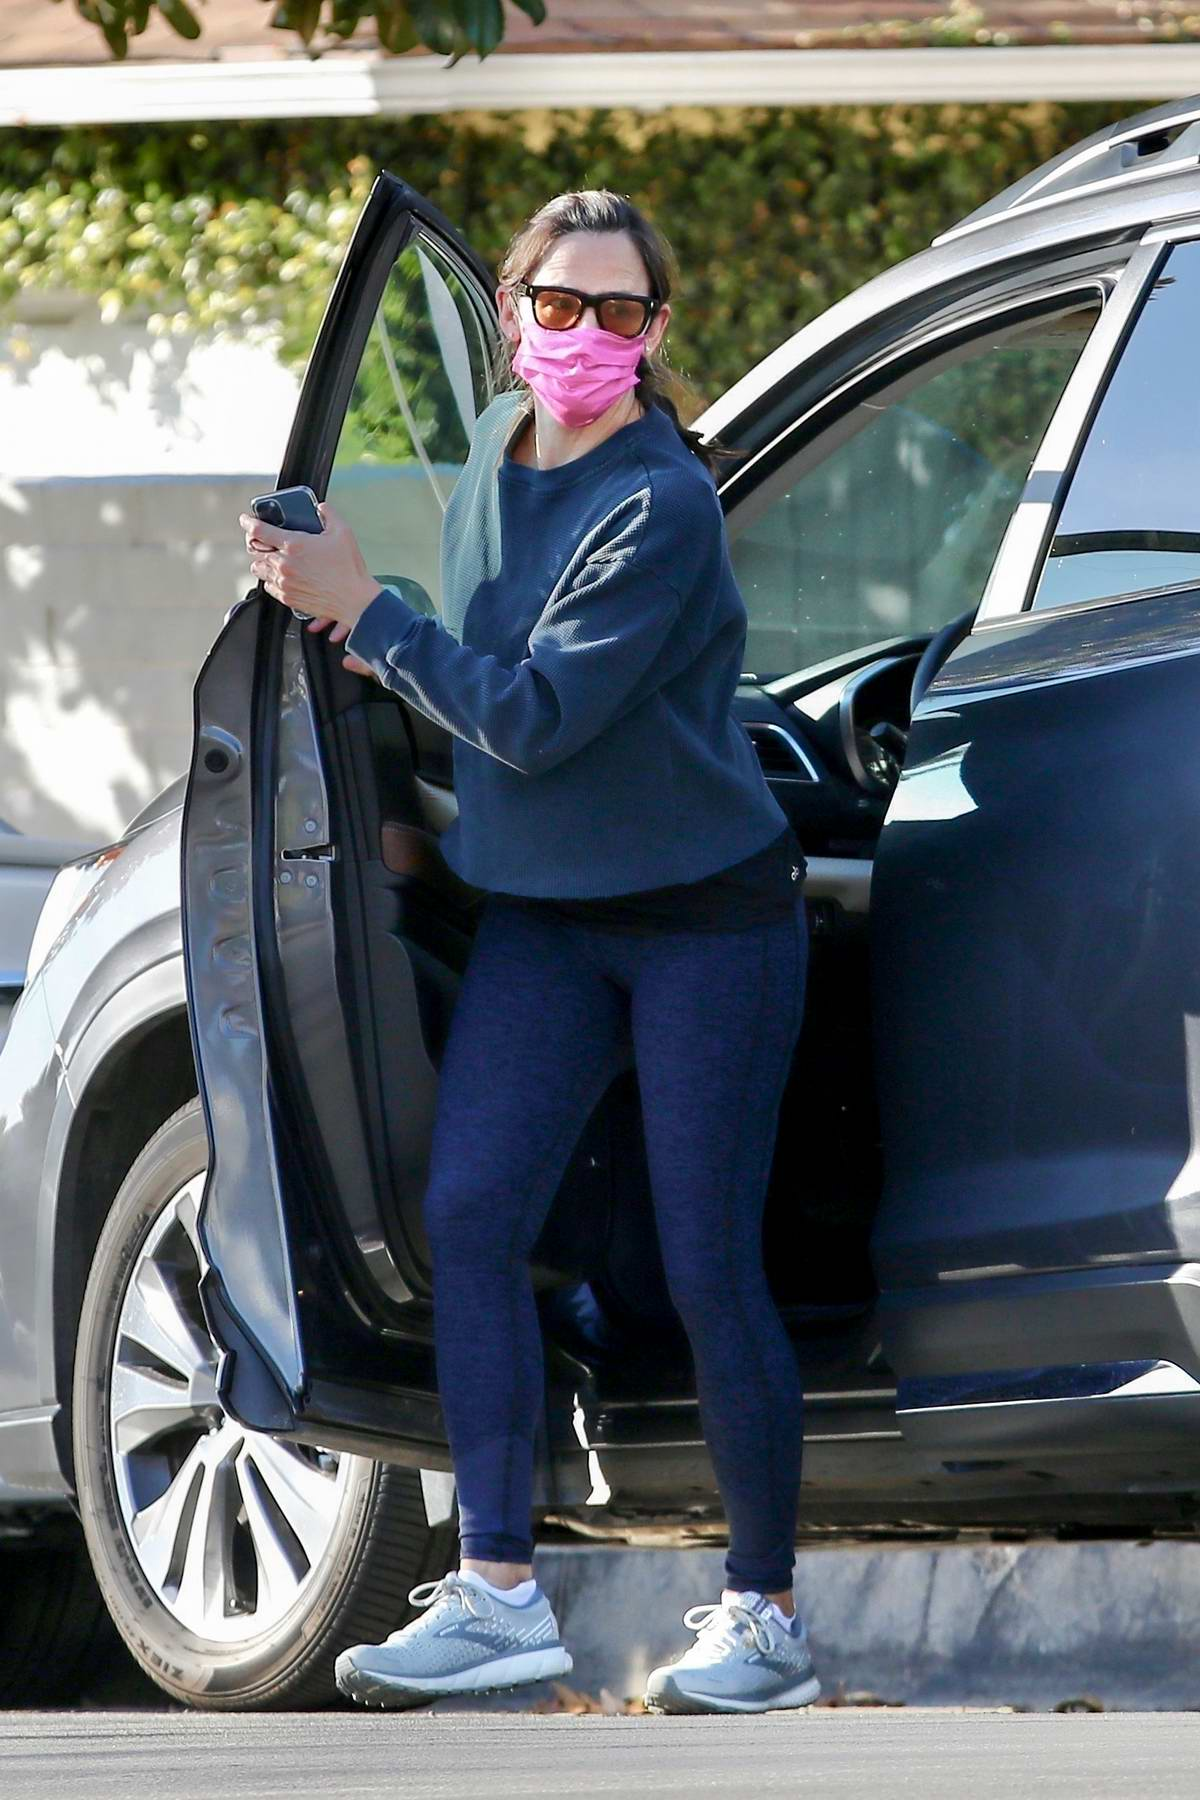 Jennifer Garner shows off her toned legs in navy blue leggings while out for a walk with a friend in Brentwood, California